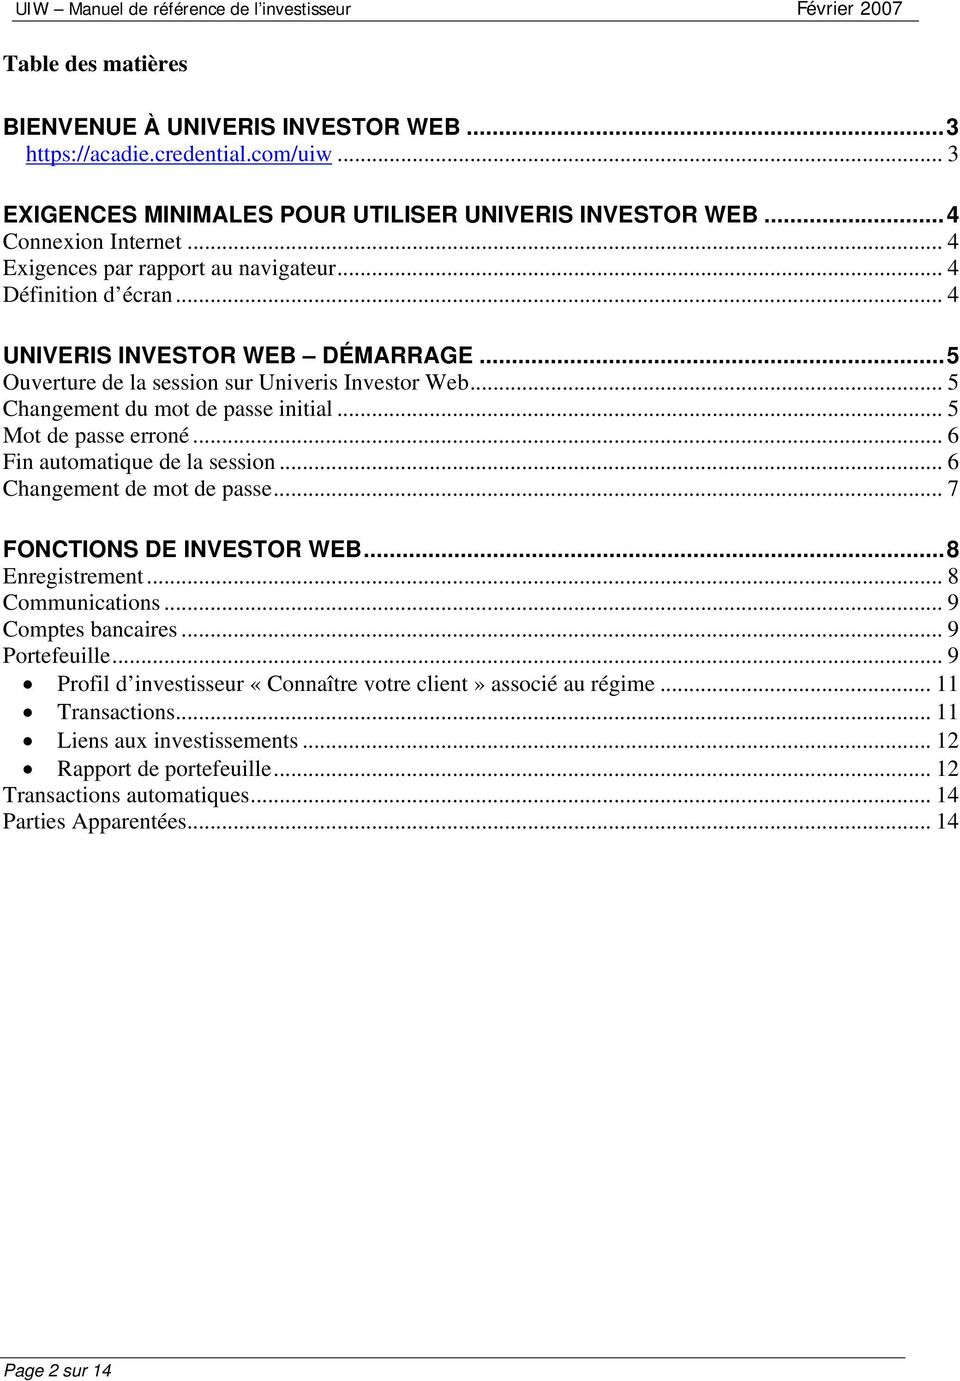 .. 5 Mot de passe erroné... 6 Fin automatique de la session... 6 Changement de mot de passe... 7 FONCTIONS DE INVESTOR WEB...8 Enregistrement... 8 Communications... 9 Comptes bancaires.